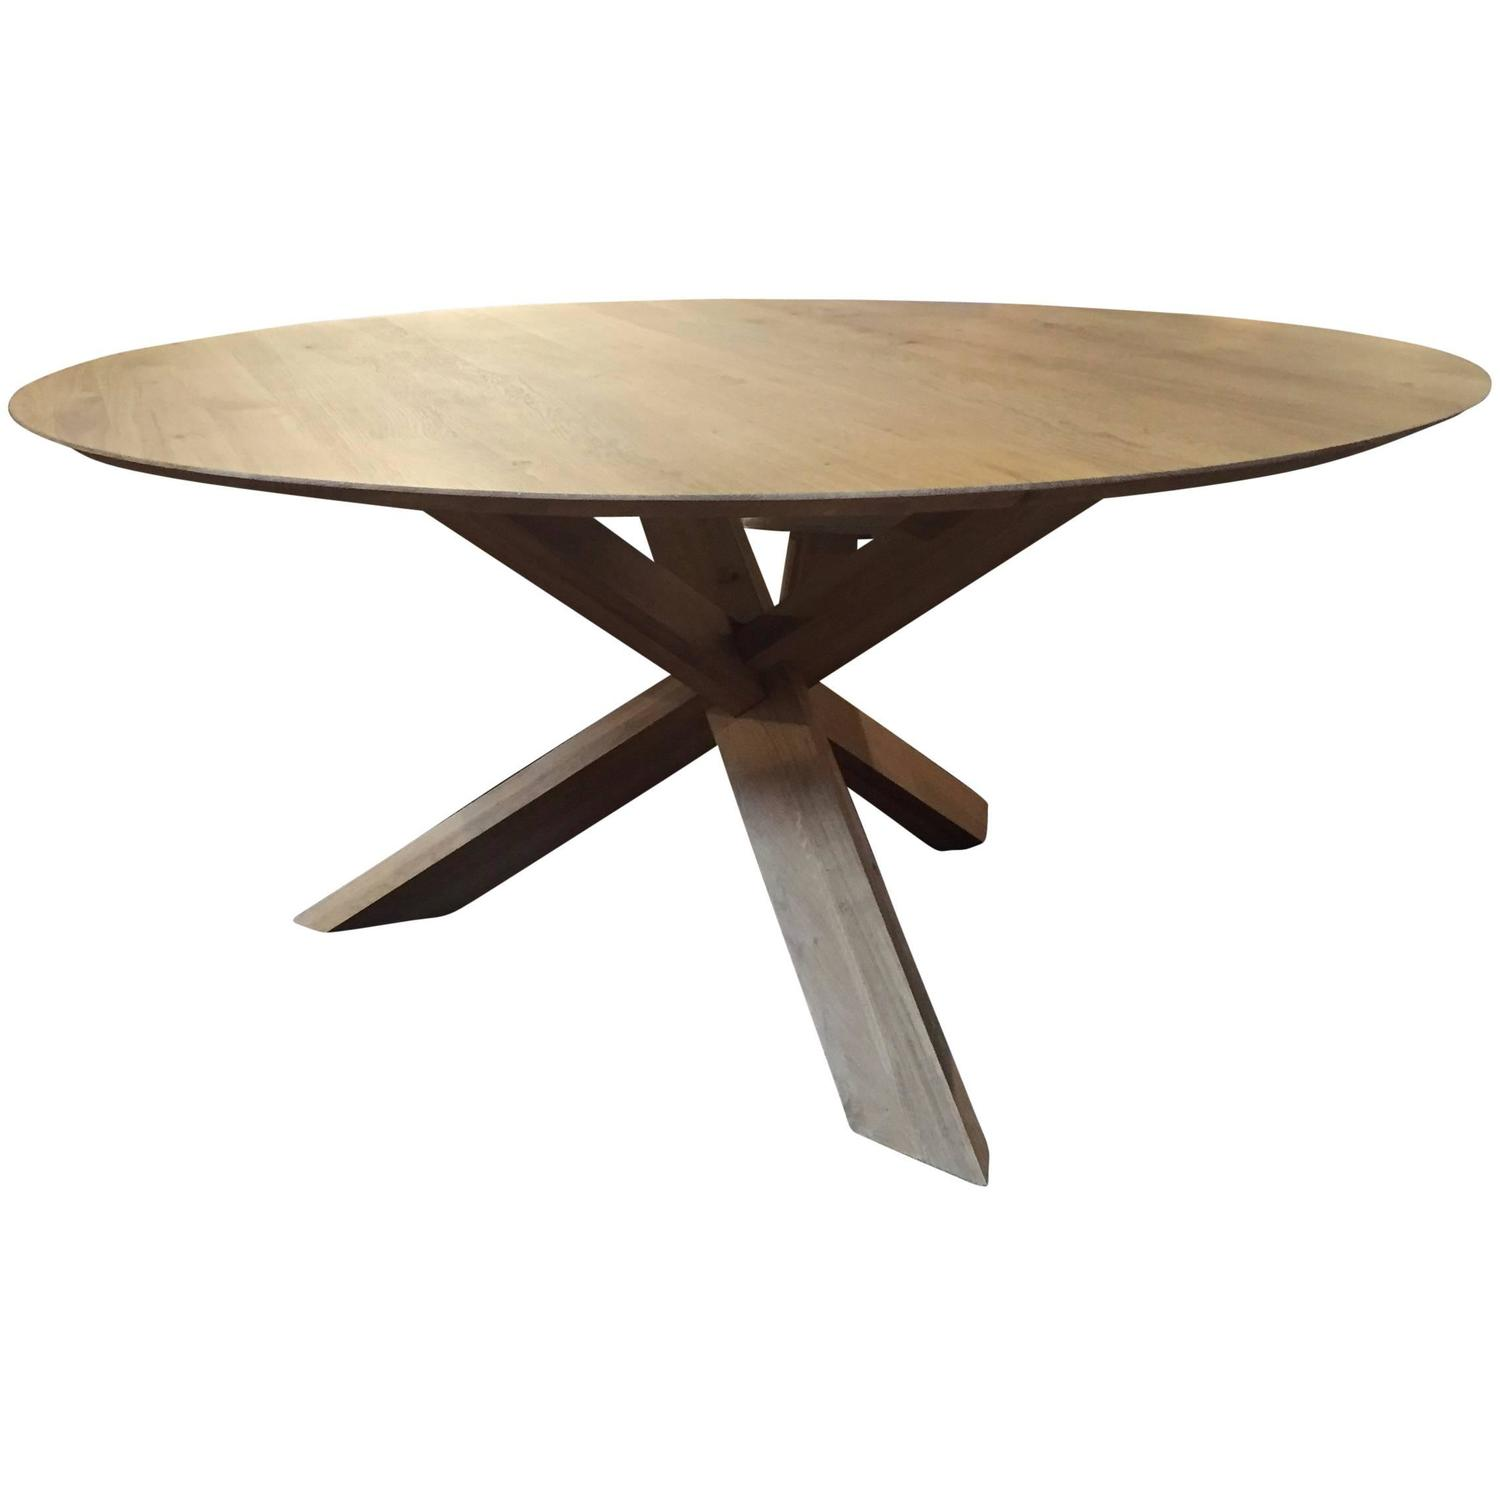 Modern large white oak round dining table haskell design for Large round dining table for sale